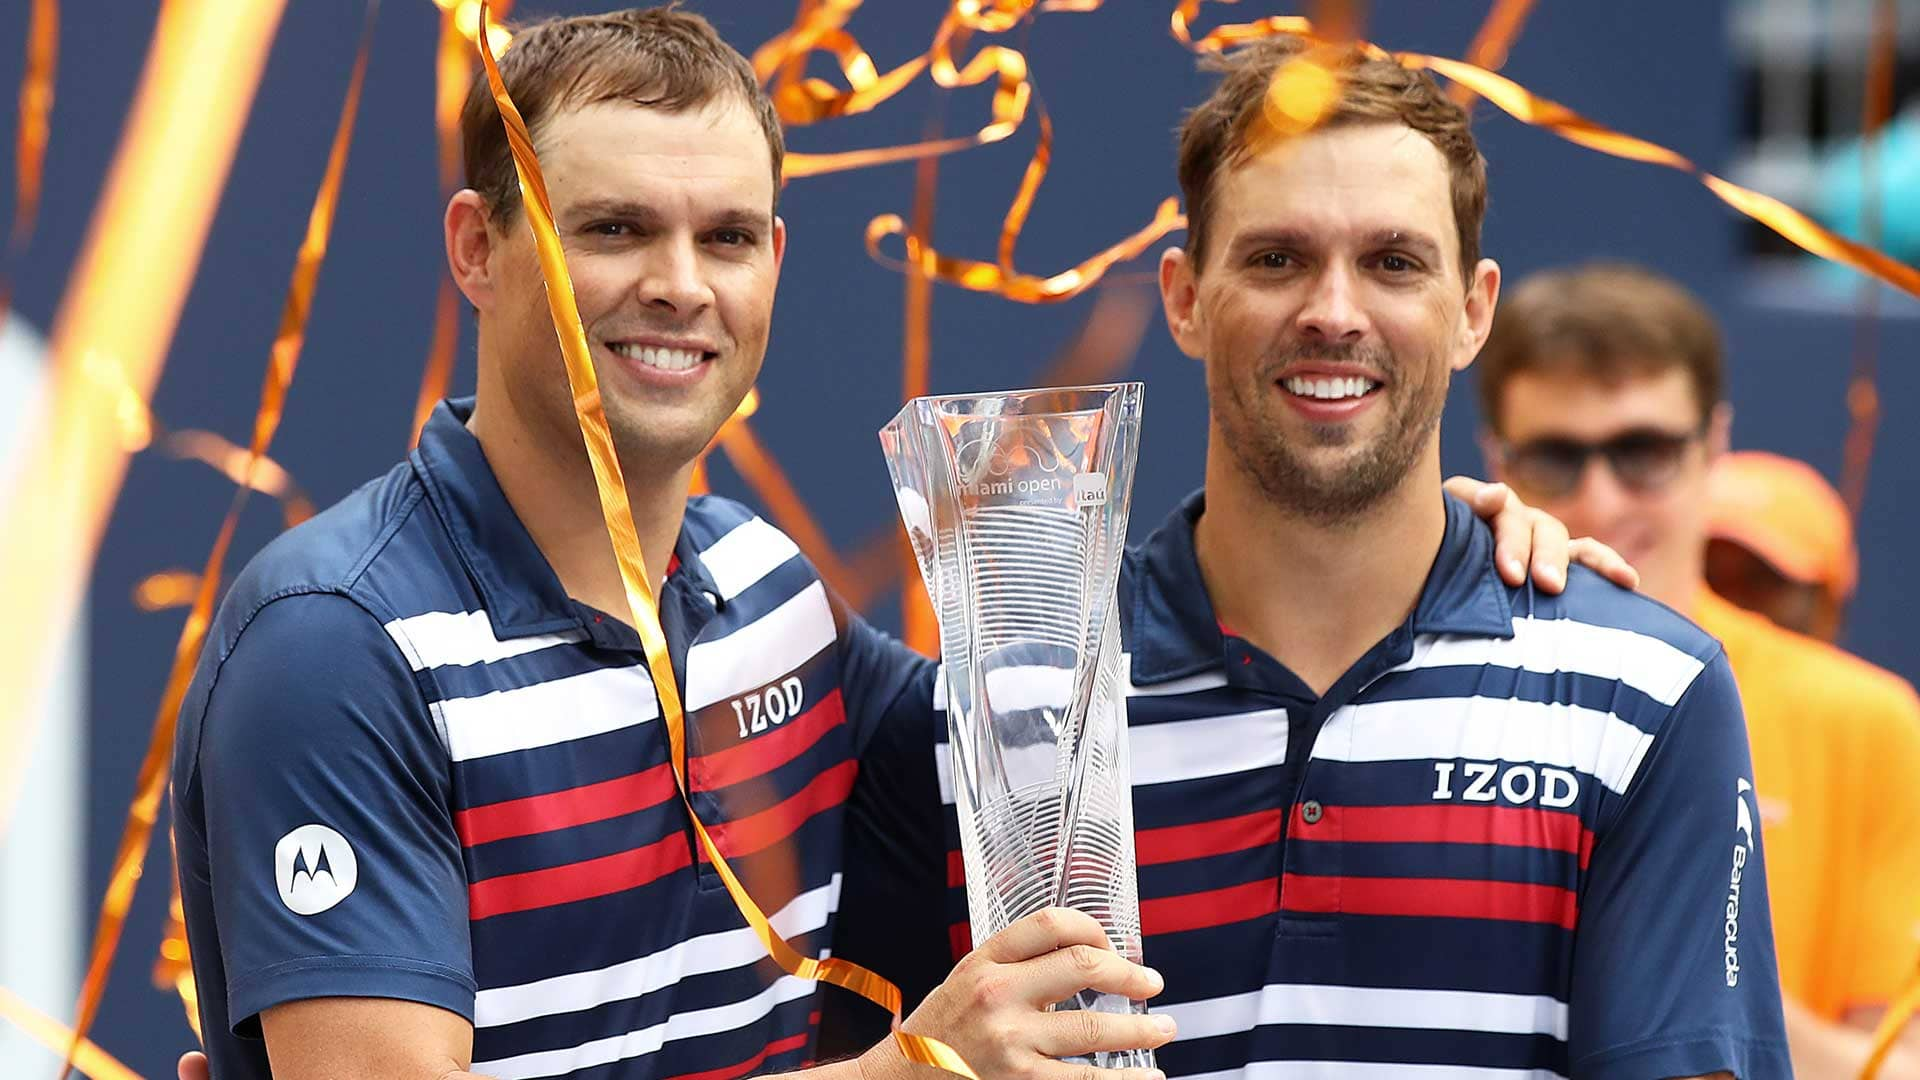 The Bryan Brothers win the doubles title at the <a href='https://www.atptour.com/en/tournaments/miami/403/overview'>Miami Open presented by Itau</a>.